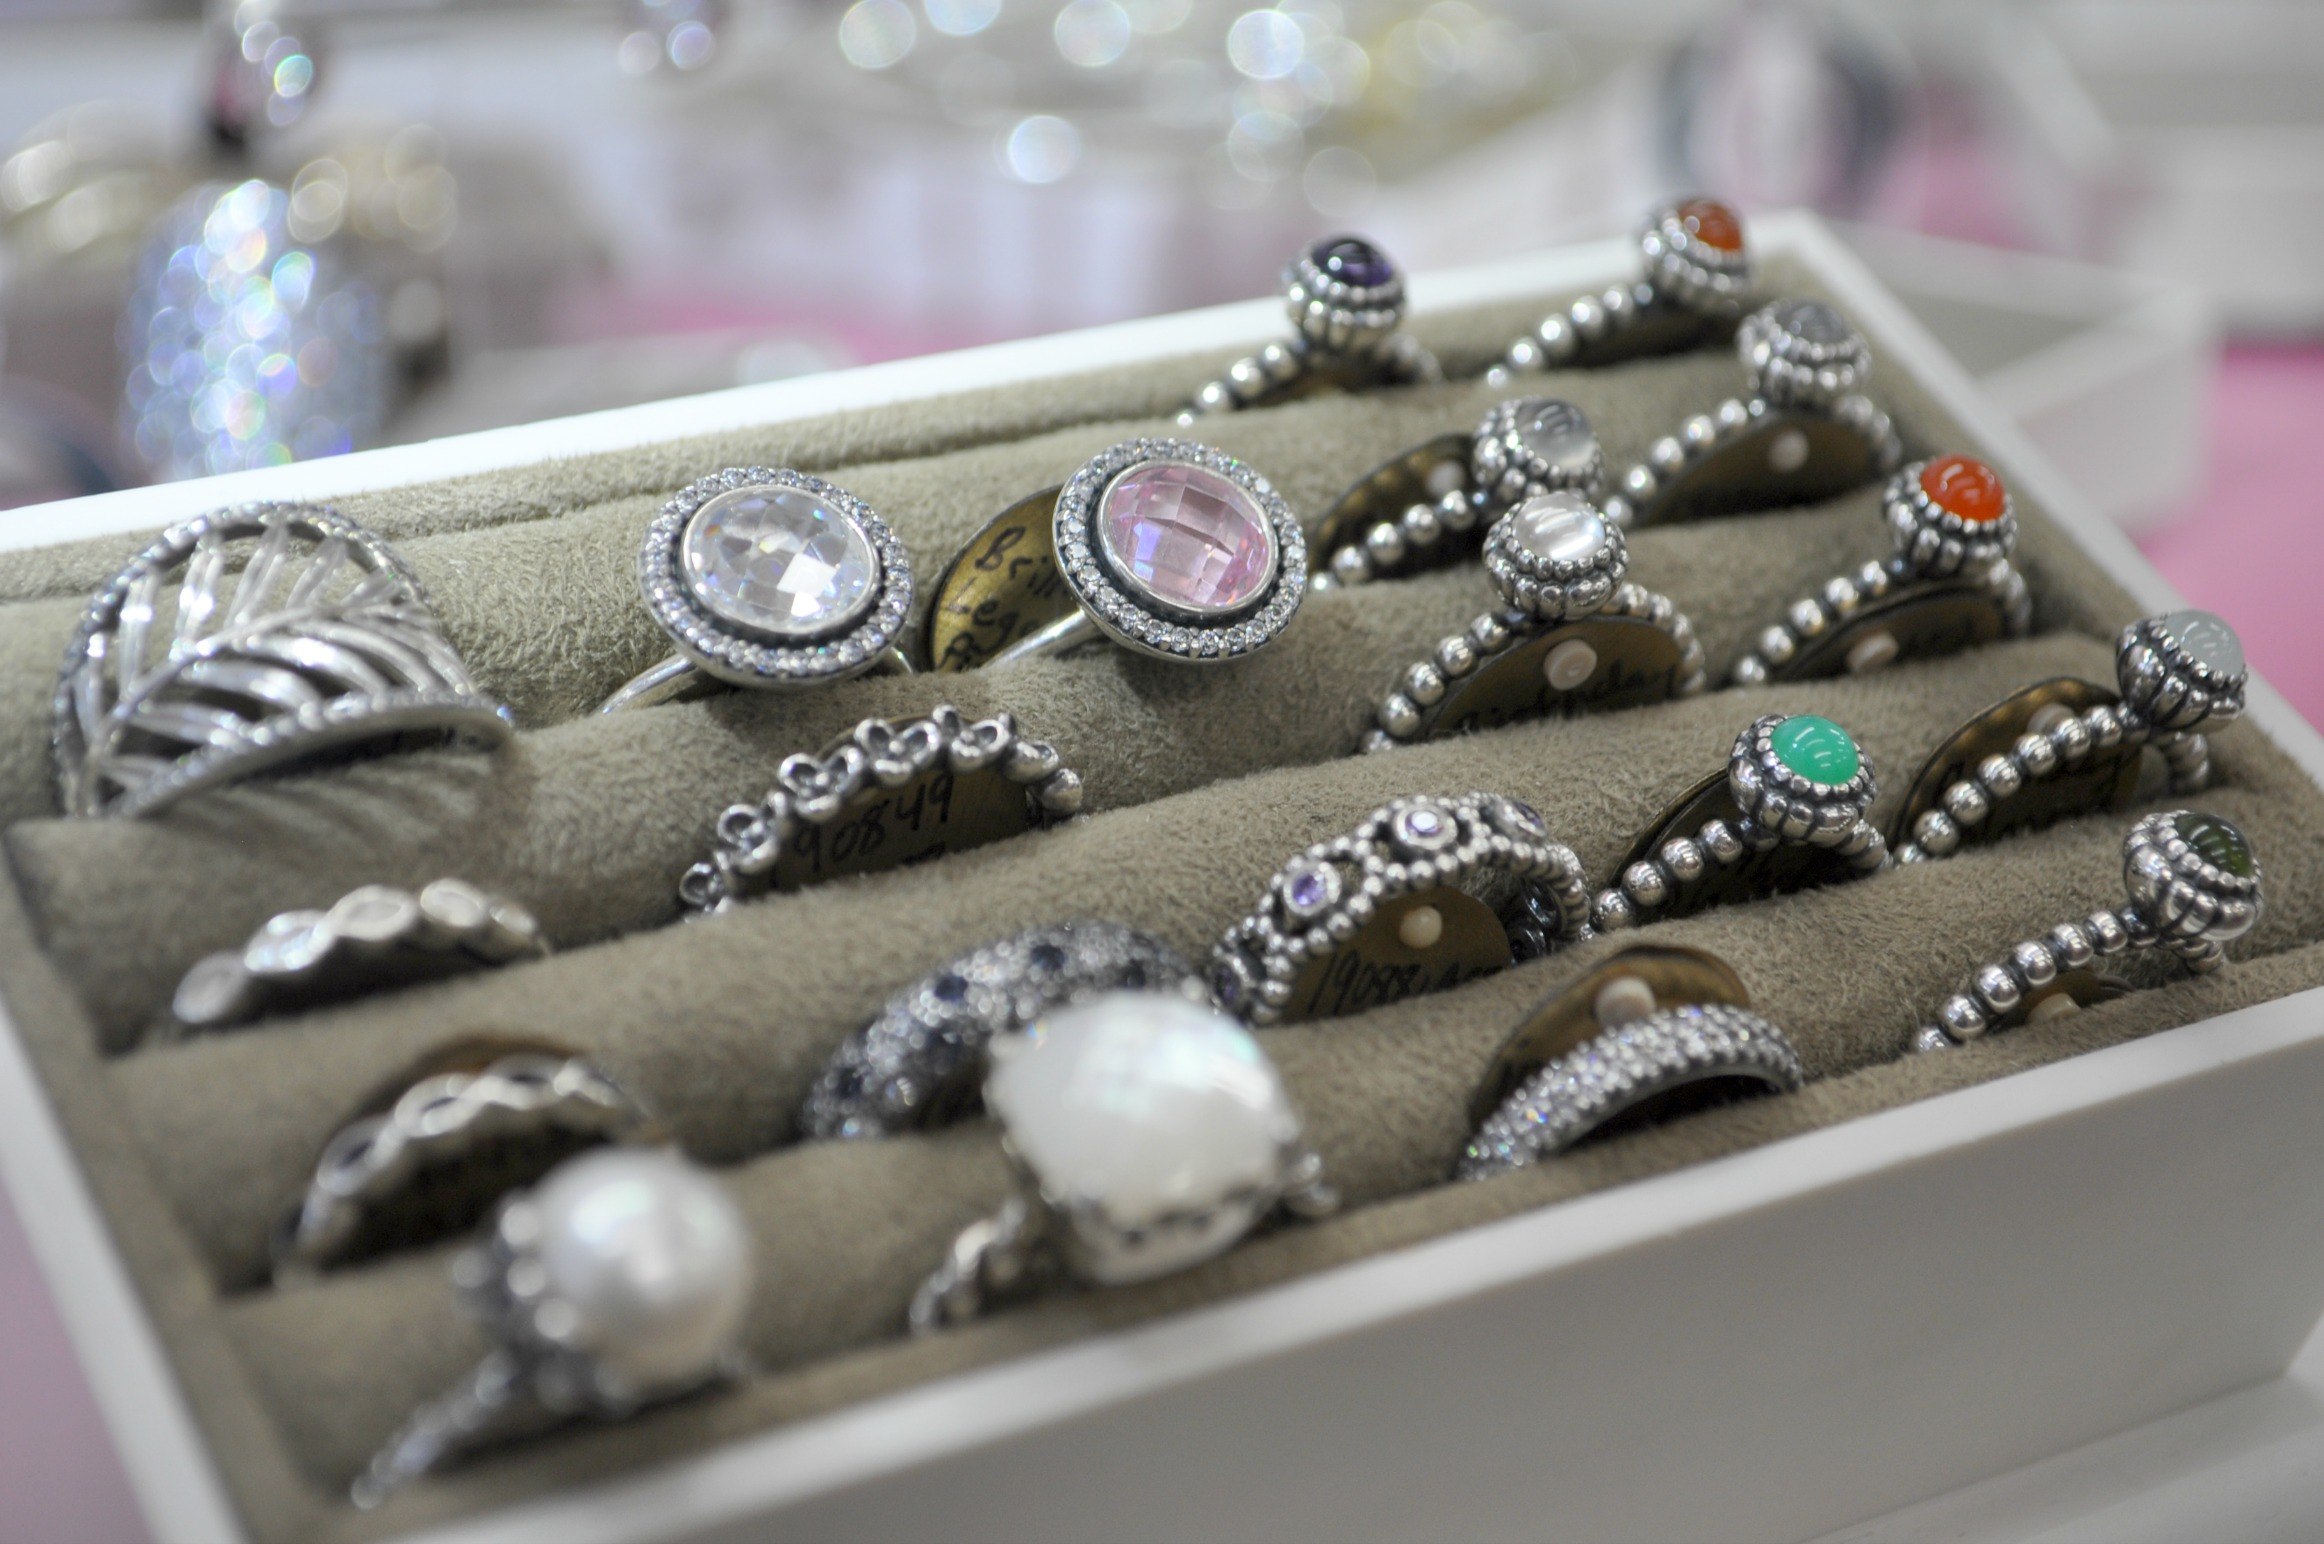 Bill's Jewelry Shop will host a liquidation sale which will run now until Christmas.